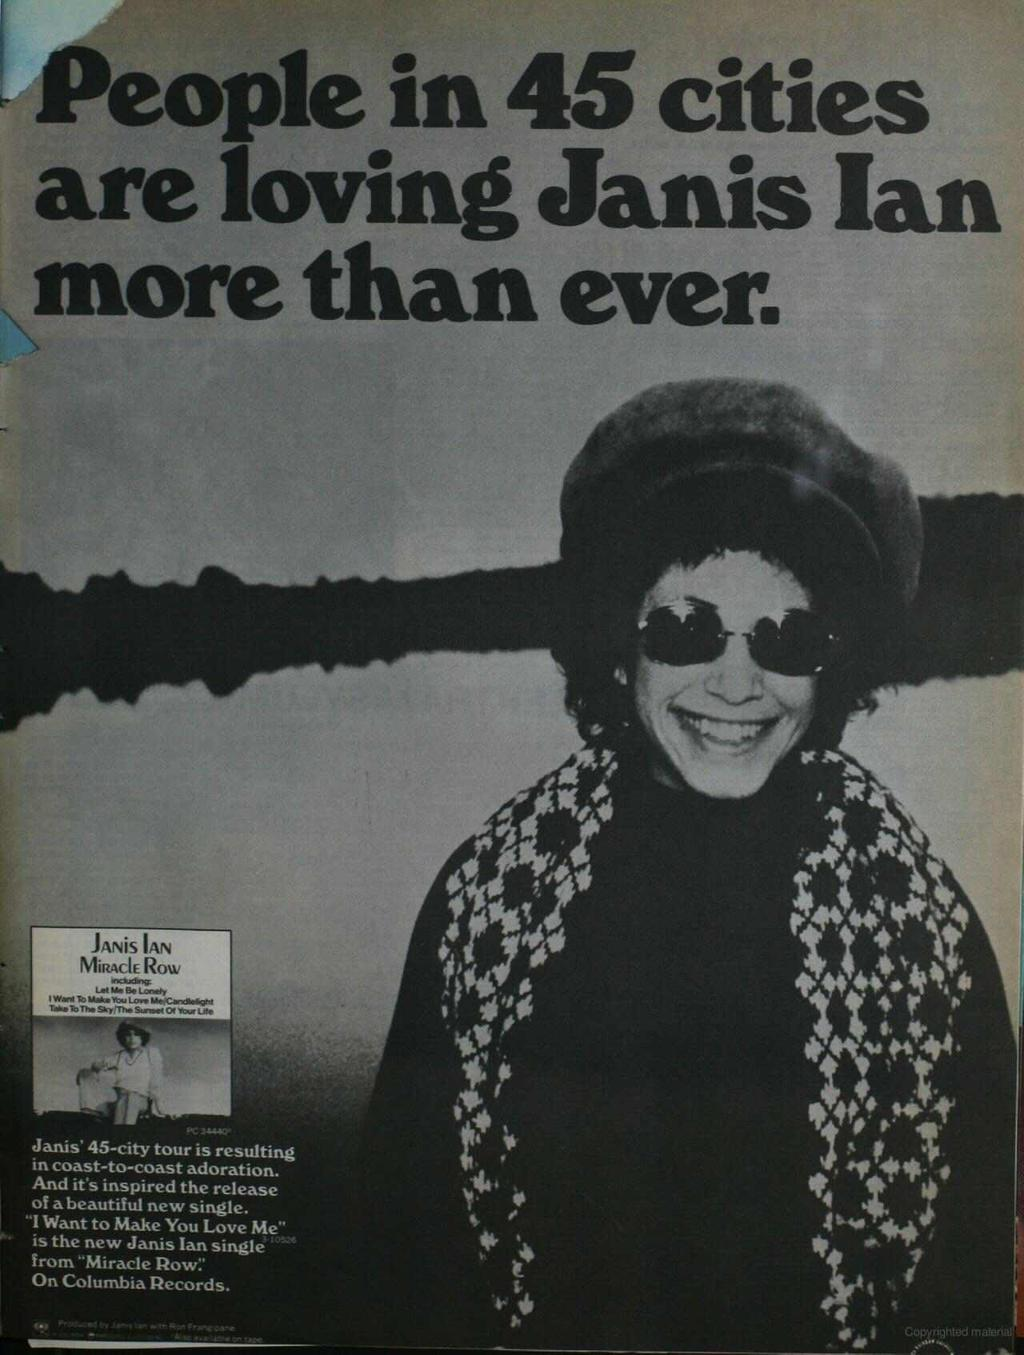 People in 4 cities are loving Janis an more than ever. JANÌS AN Muscle Row Law,/ Wa+bYW WulonMNCaWya TnabTM Sky The `.